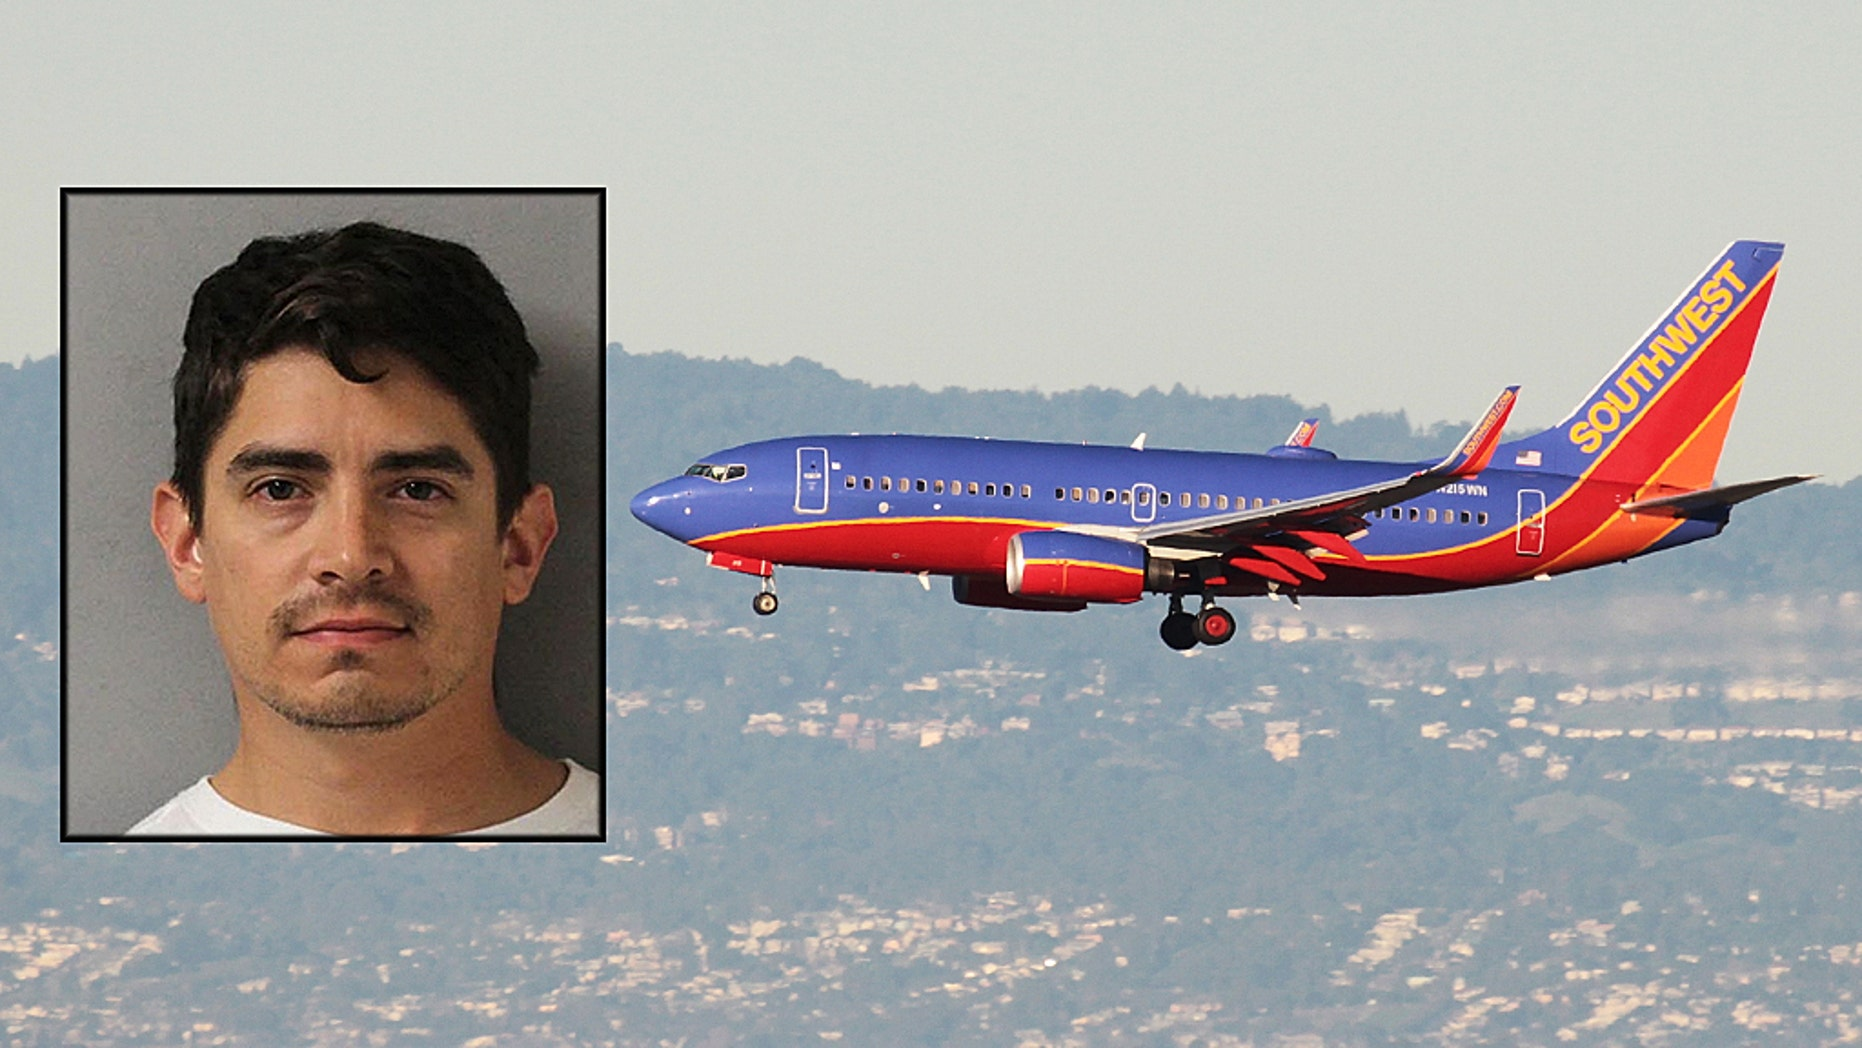 A Texas man was arrested after a passenger accused him of sexual assault.